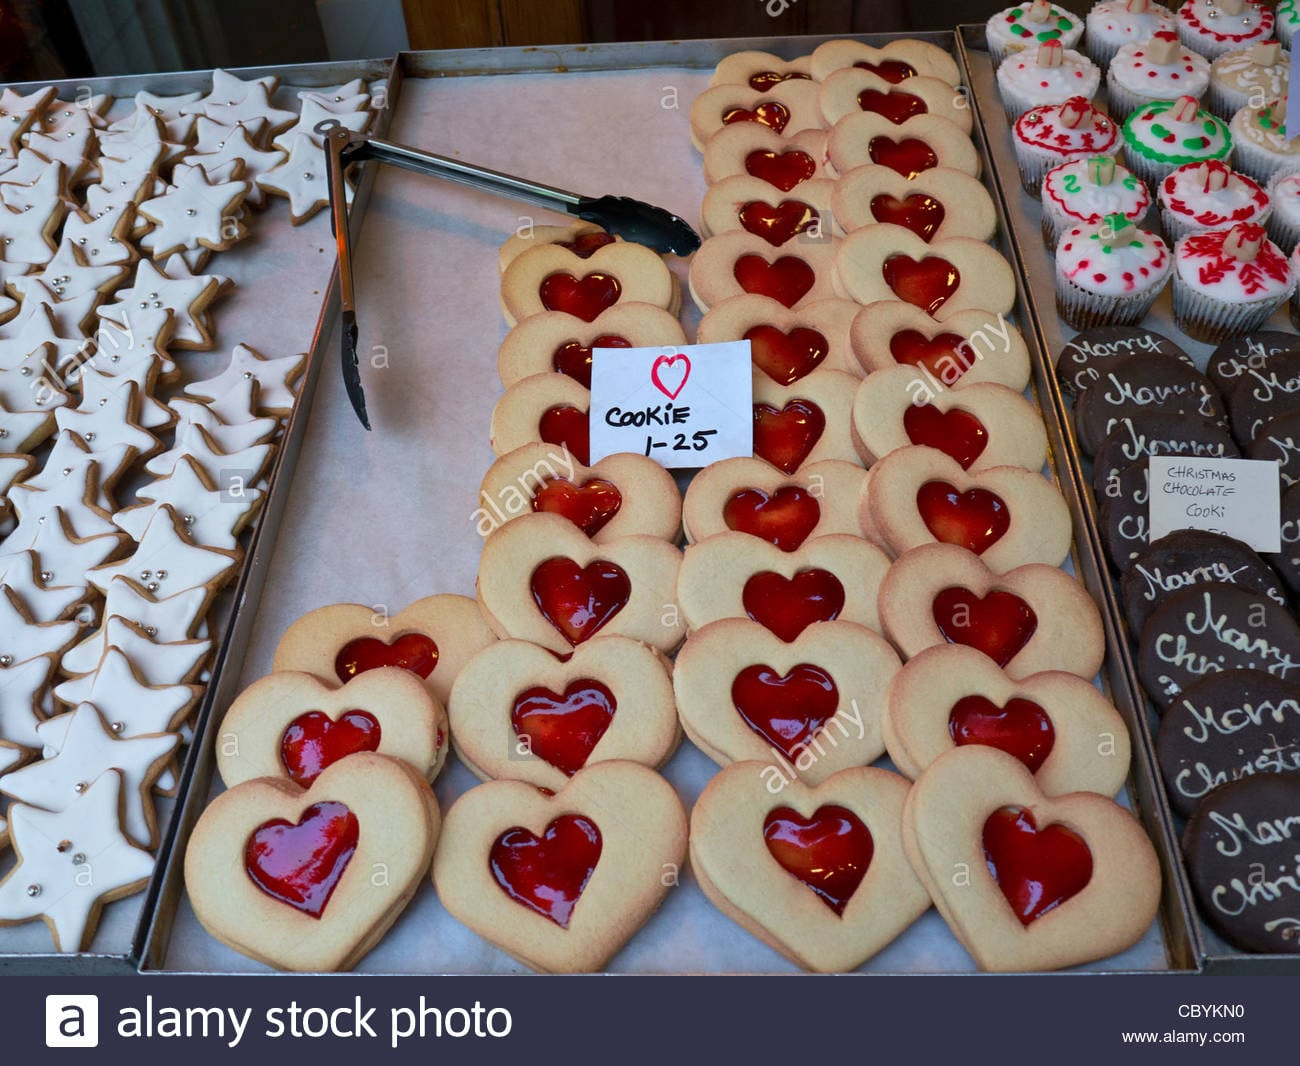 Biscuits Cookies Jam Heart Stall Heart Shaped 'love' Cookies On